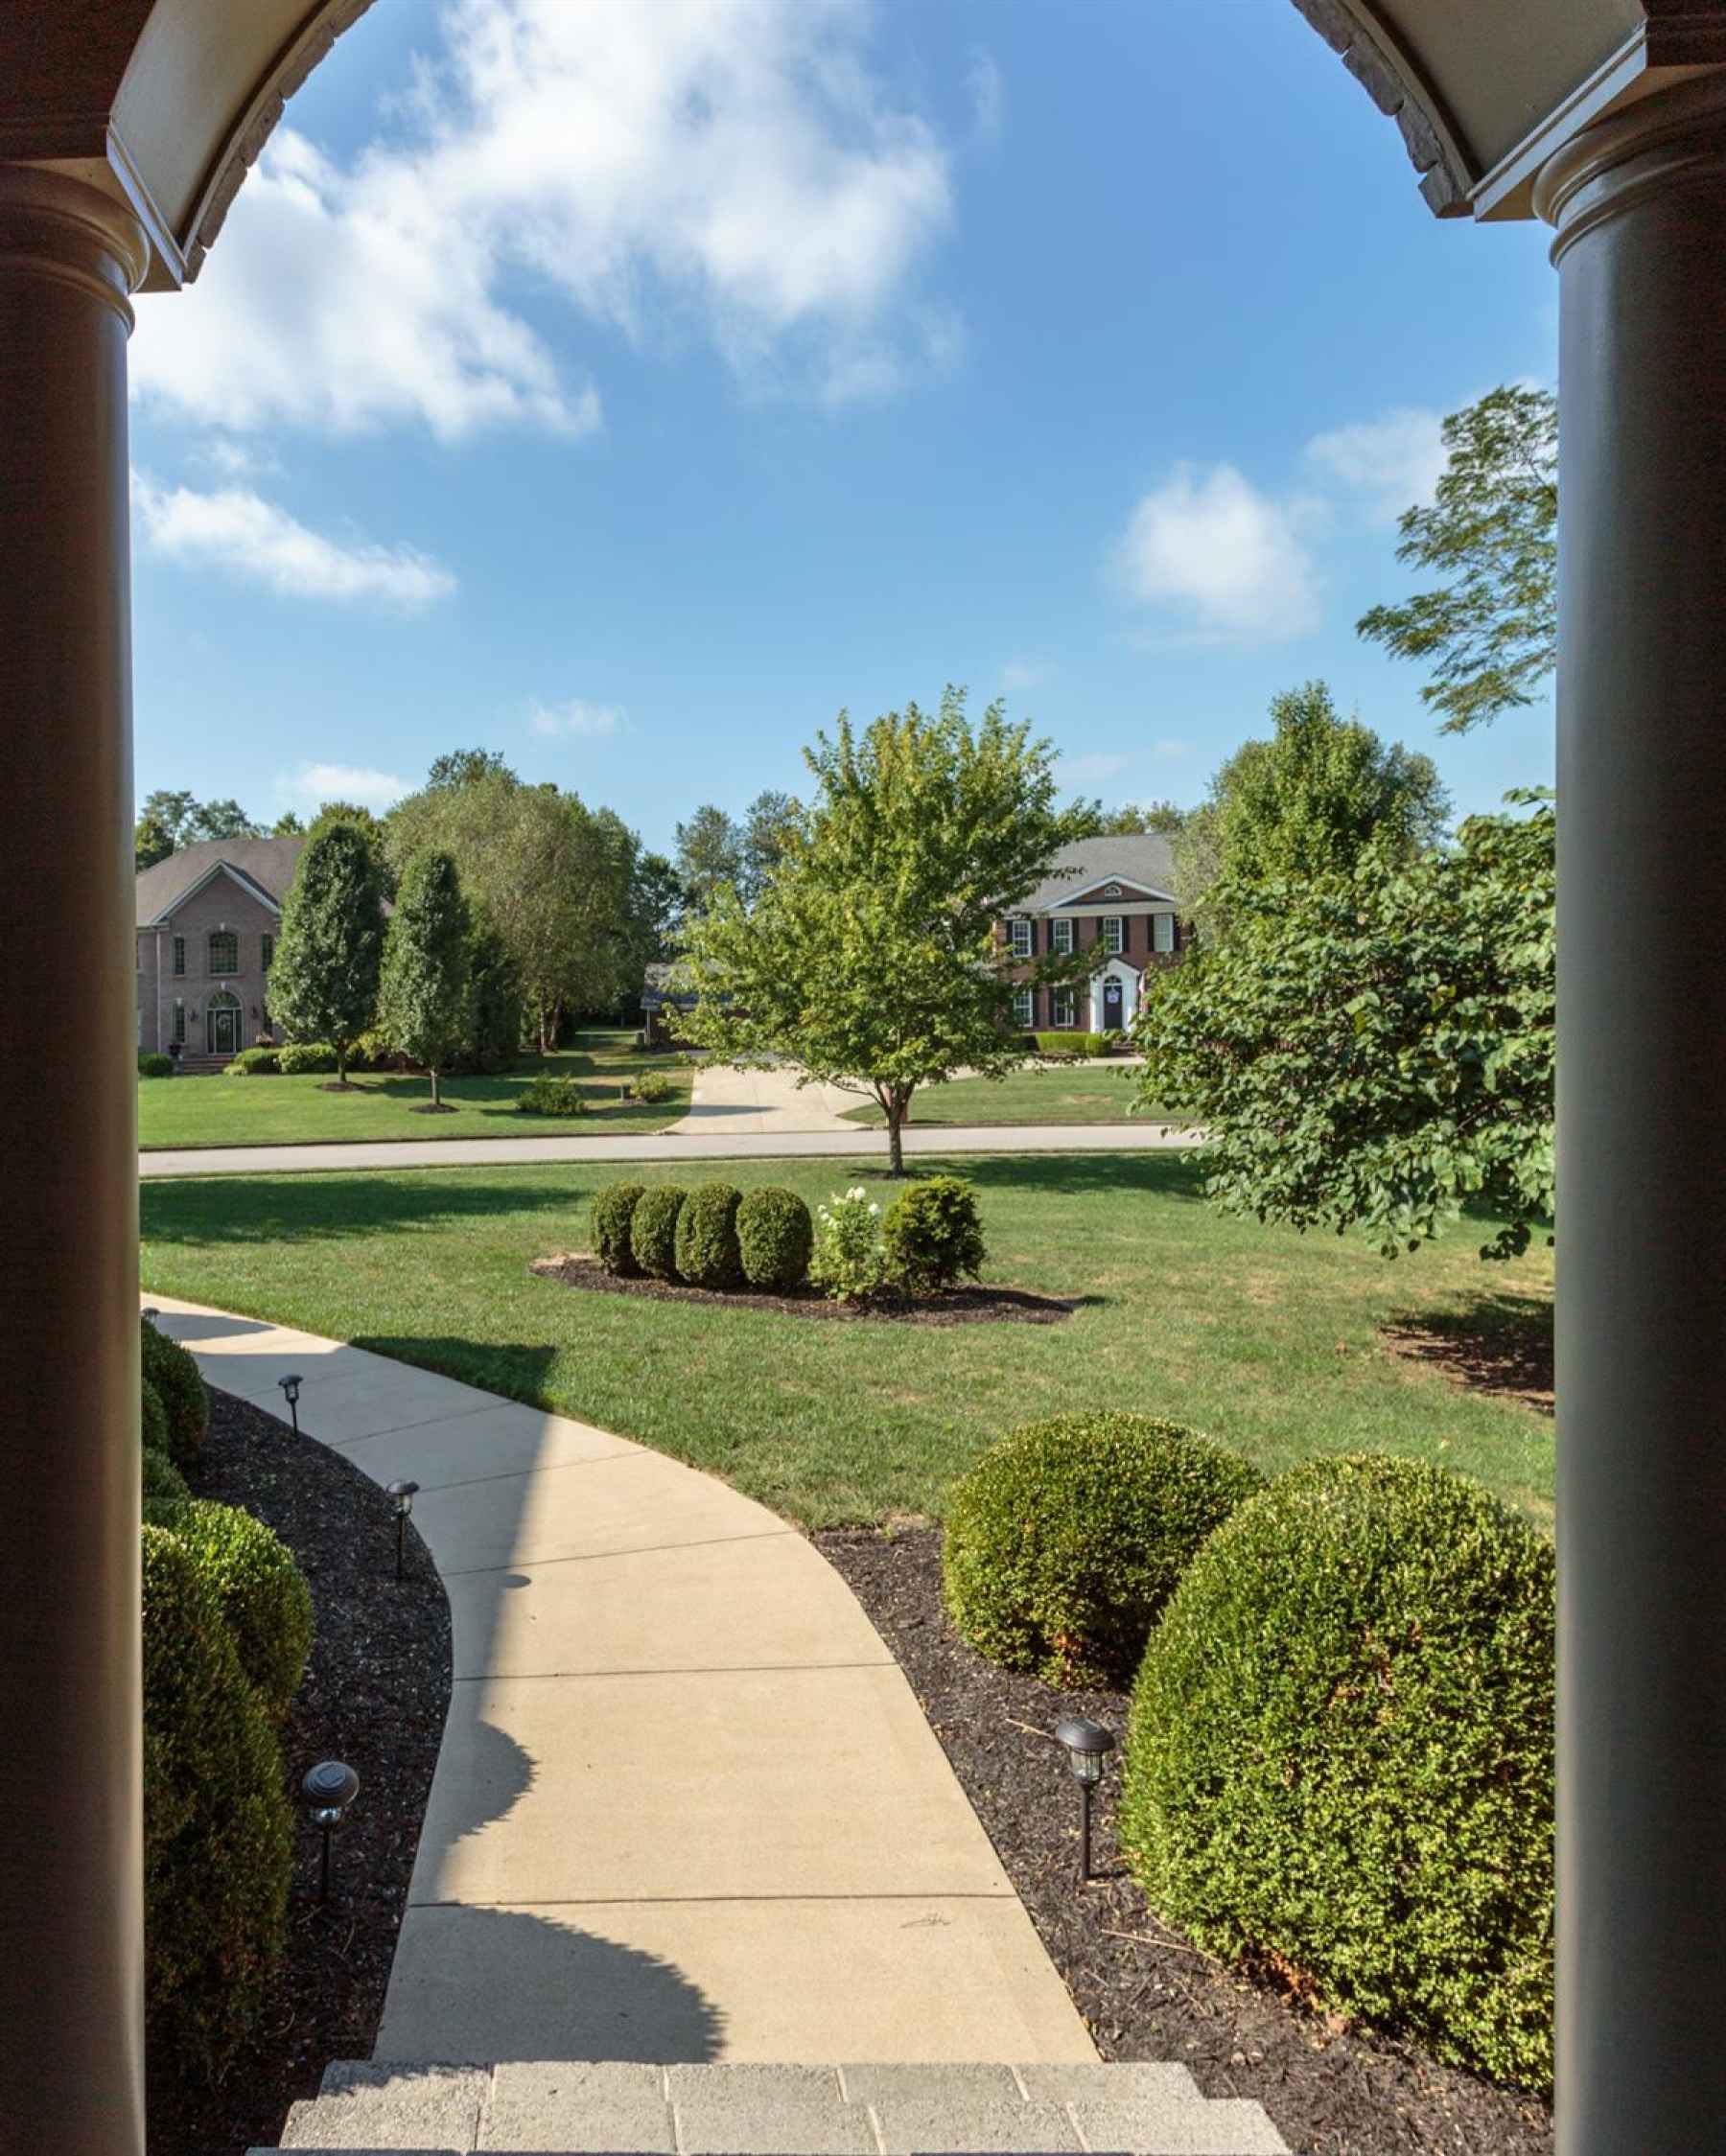 View from the front porch of the surrounding upscale homes in the neighborhood.